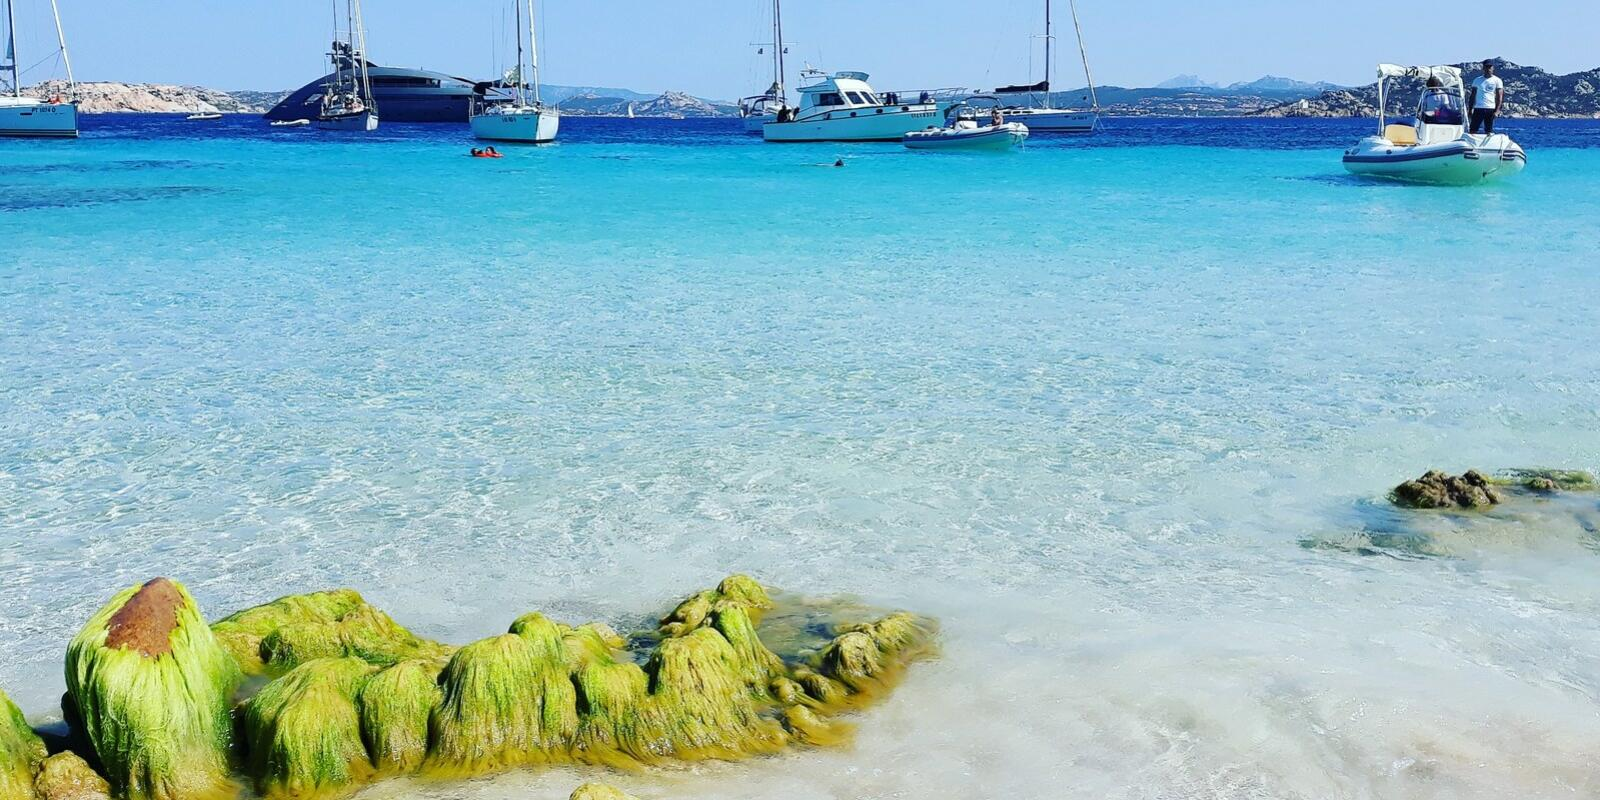 An unforgettable day to discover the Maddalena Archipelago.